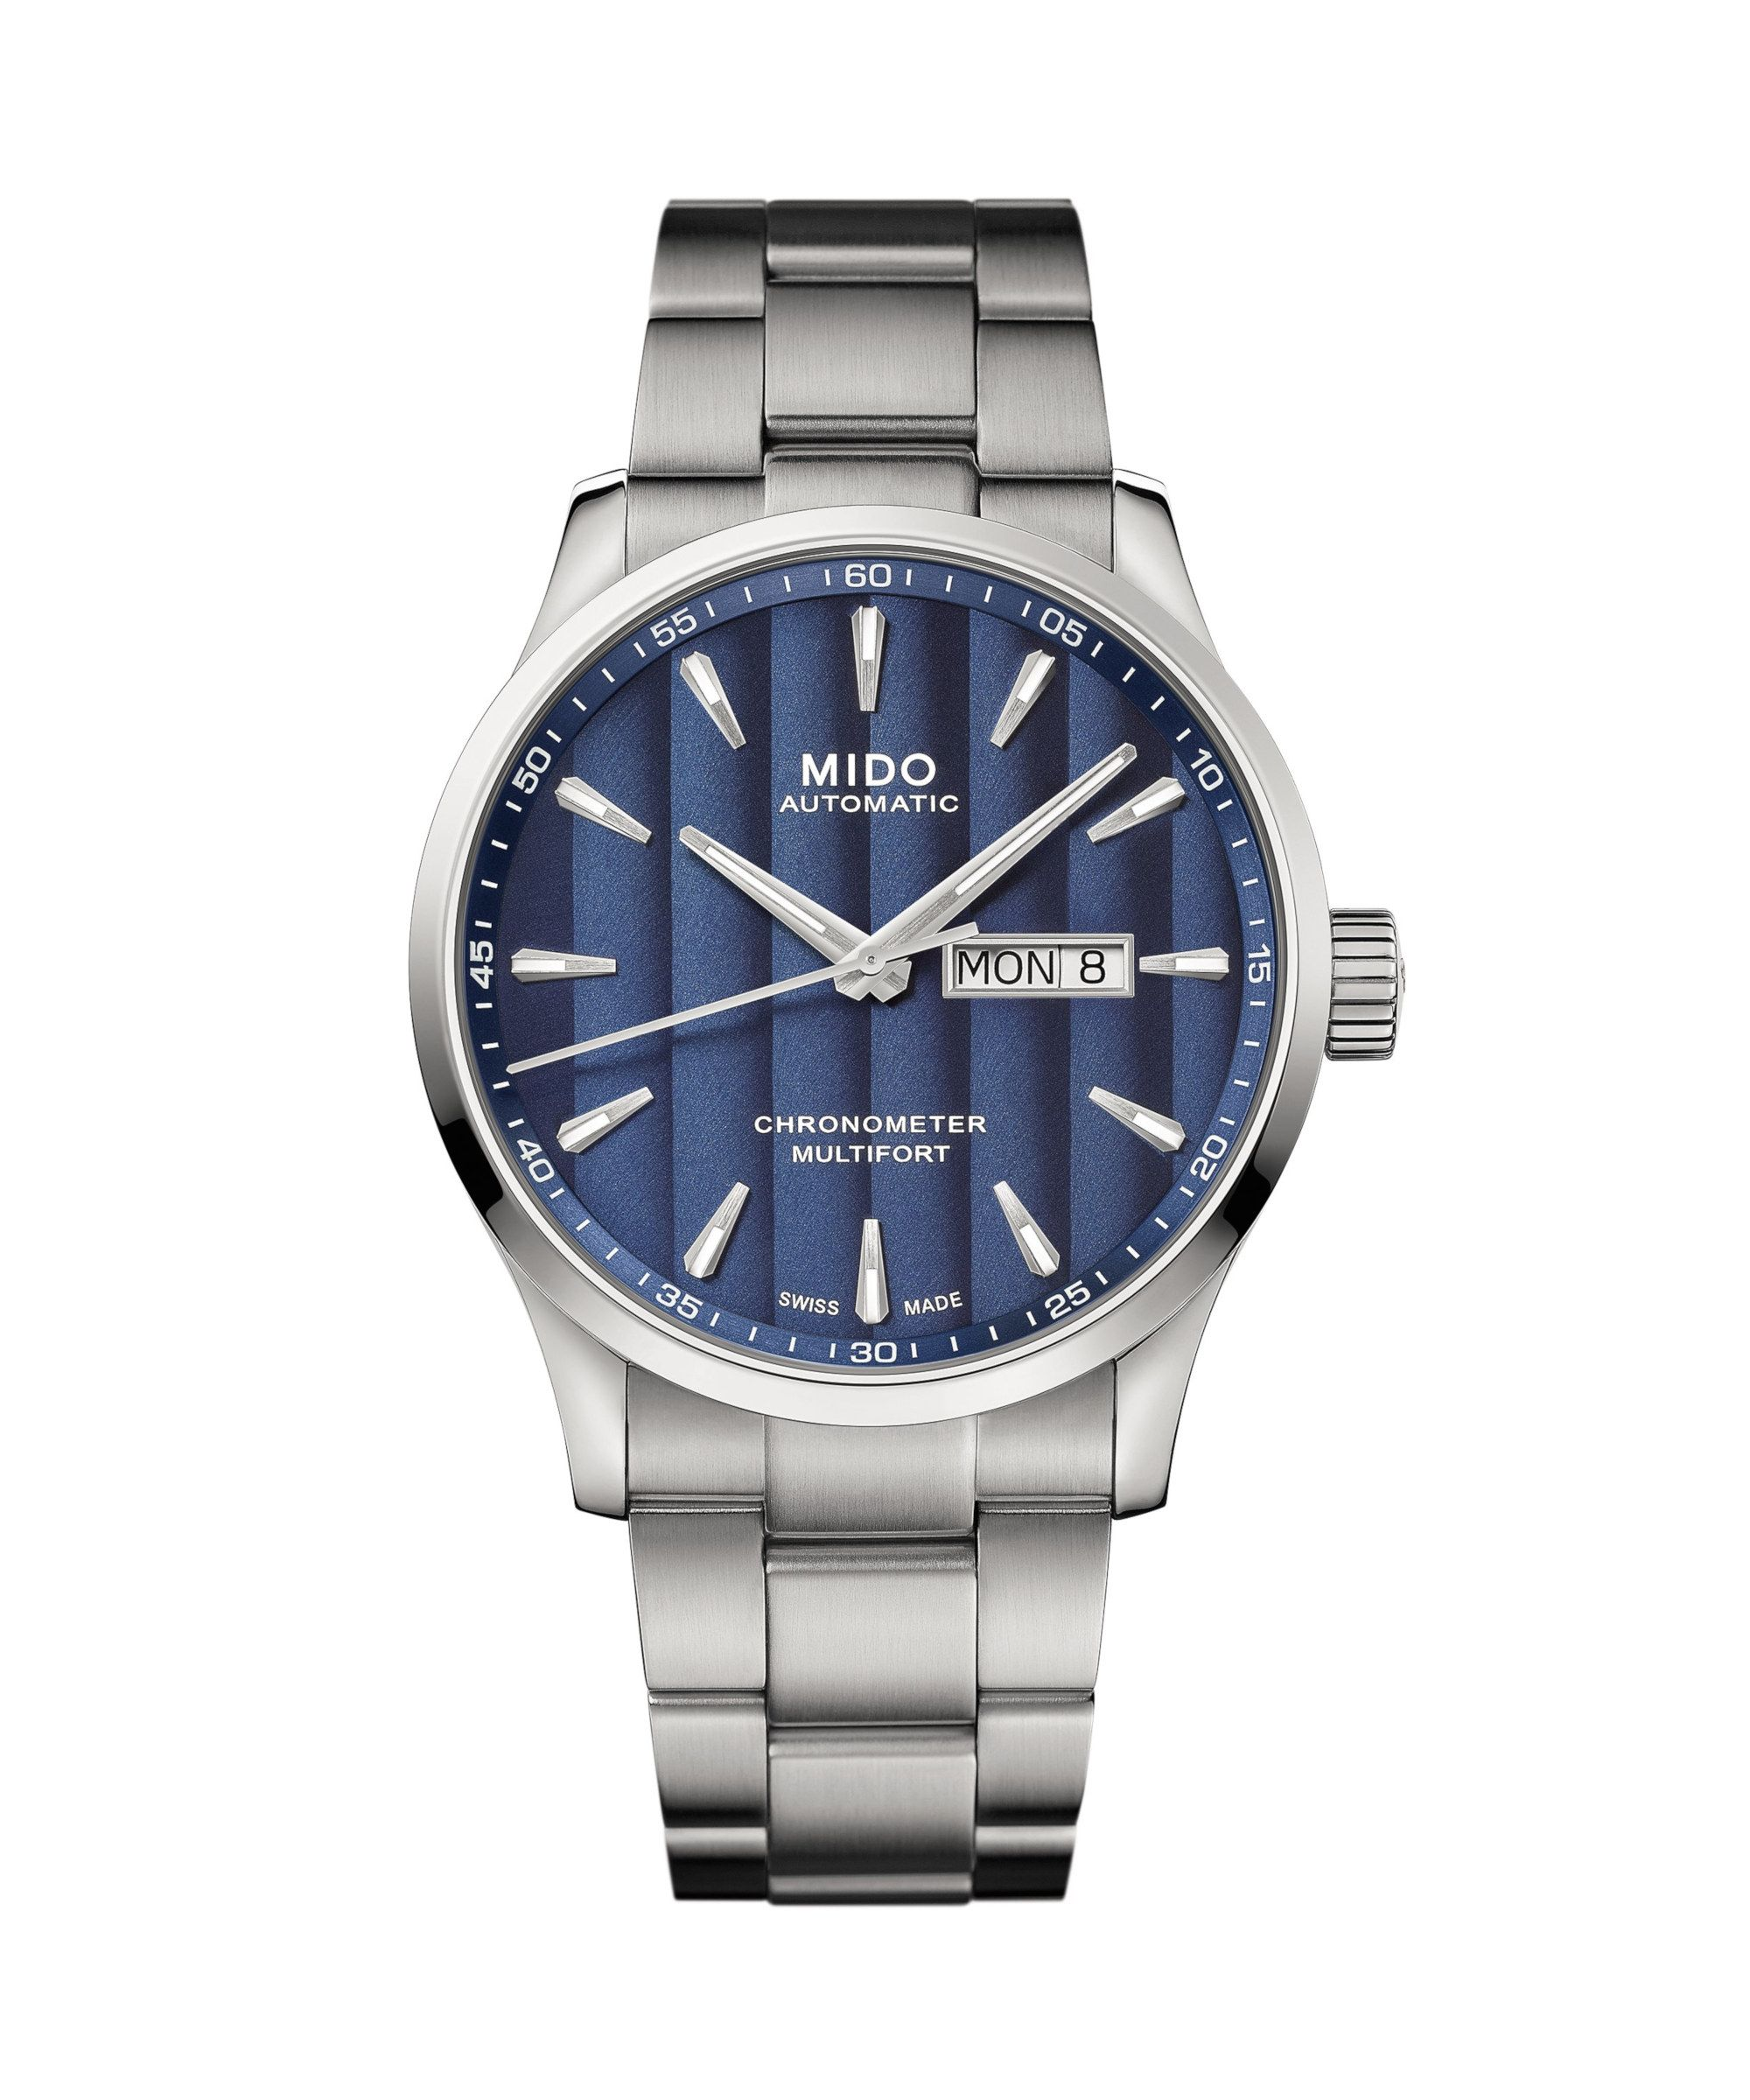 Mido Multifort Chronometer 1 - M038.431.11.041.00